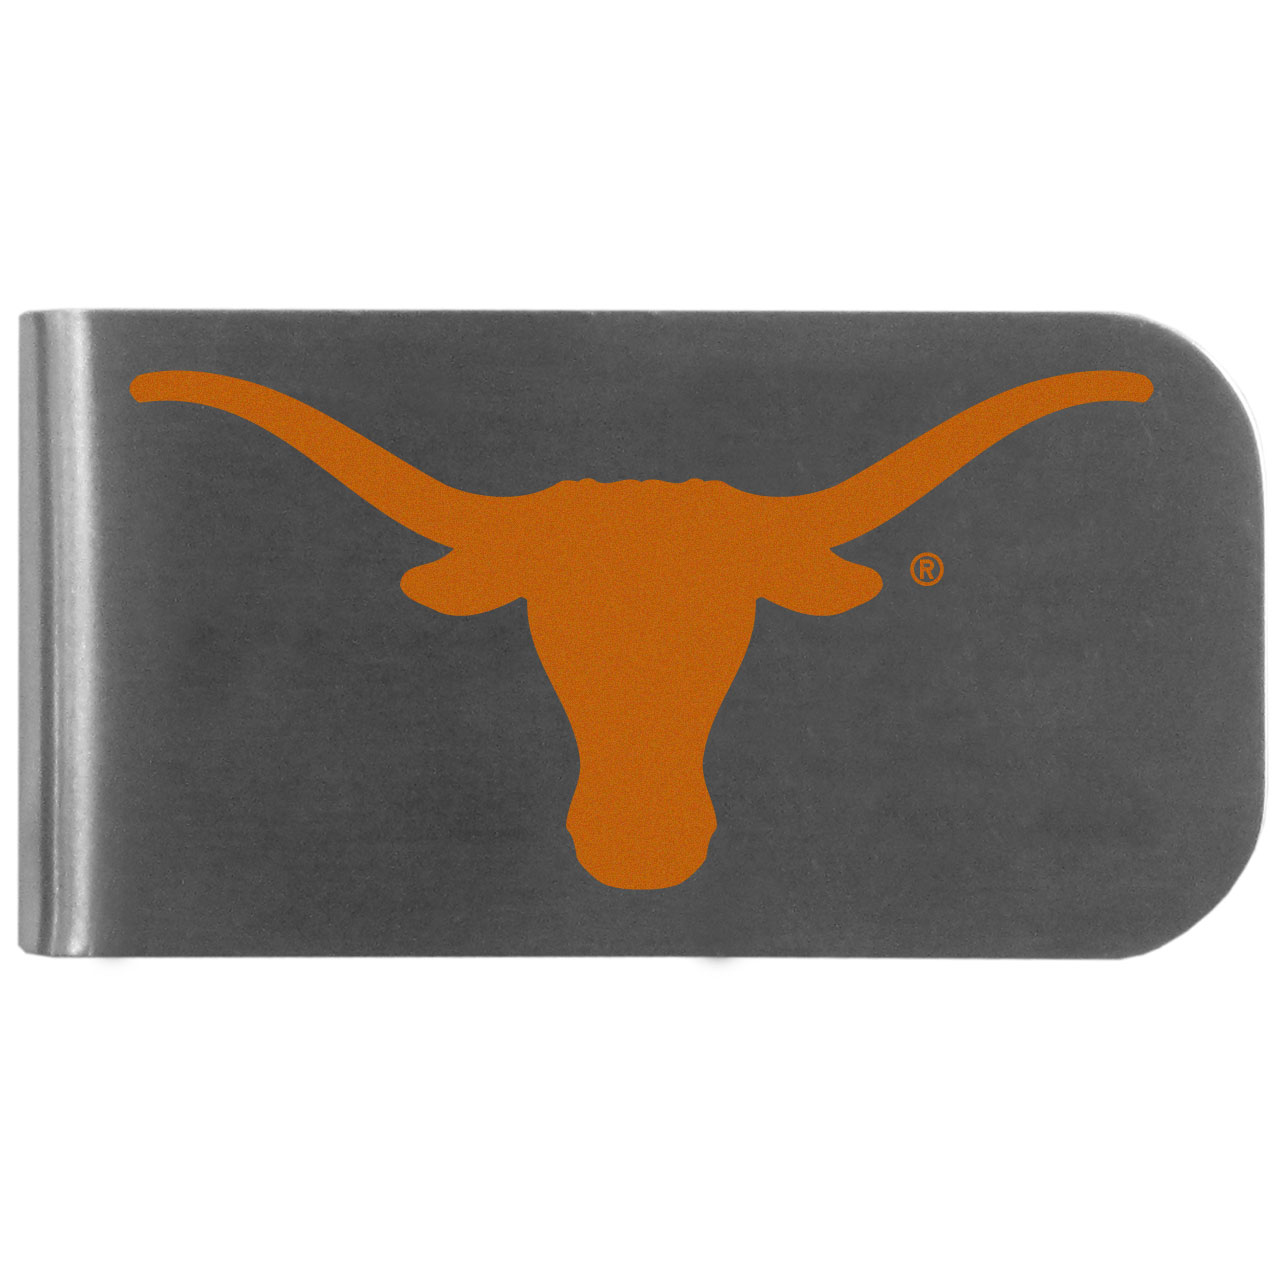 Texas Longhorns Logo Bottle Opener Money Clip - This unique money clip features a classic, brushed-metal finish with a handy bottle opener feature on the back. The clip has the Texas Longhorns logo expertly printed on the front of the clip.